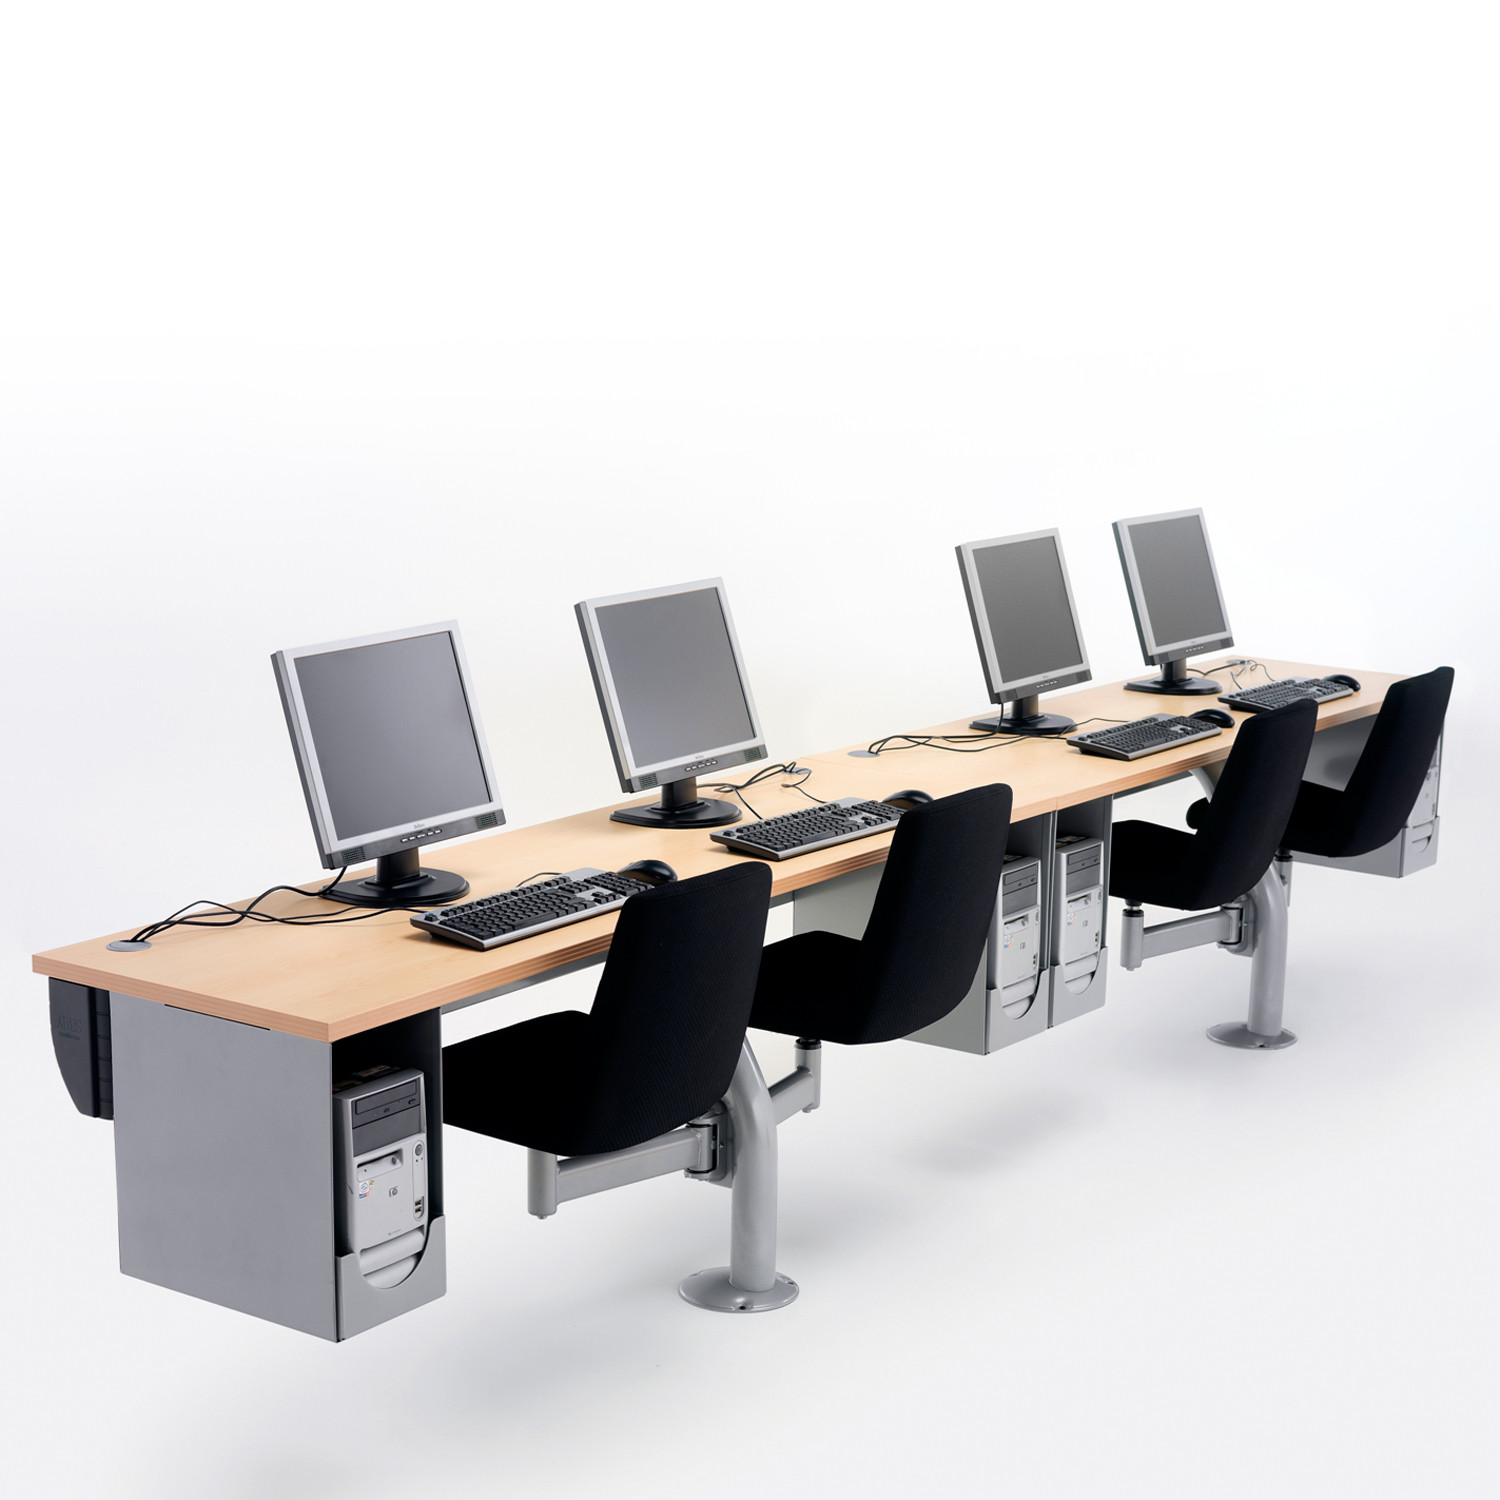 Thesi Training Seating System in row